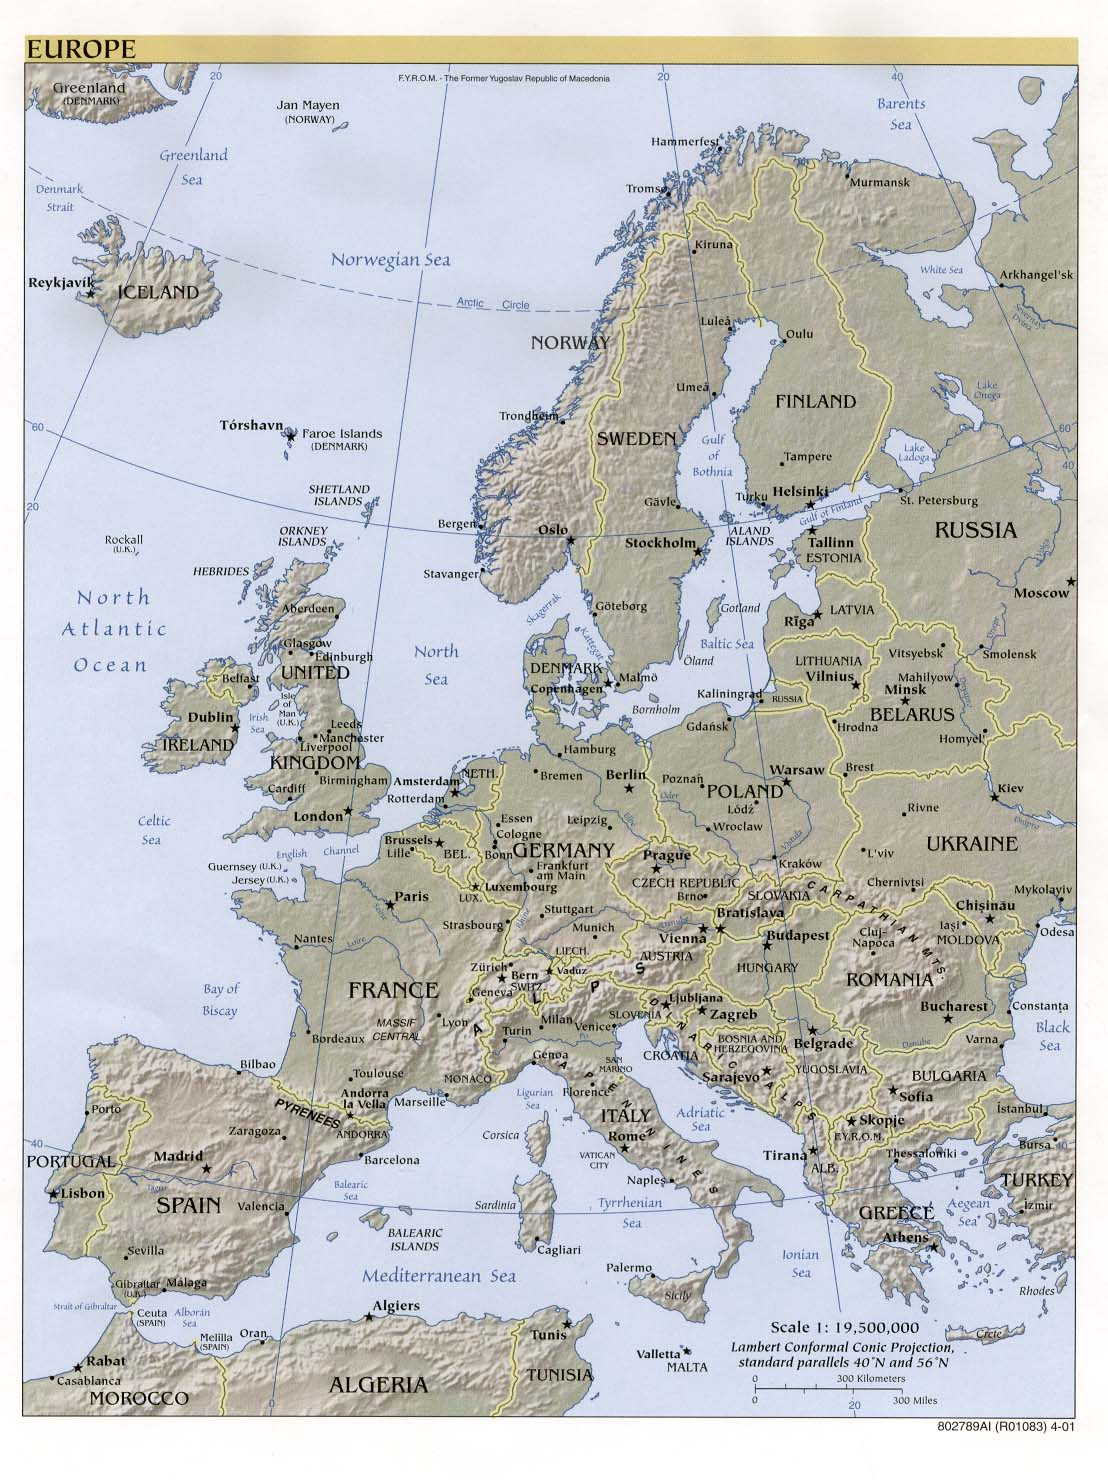 Europe topography 2001